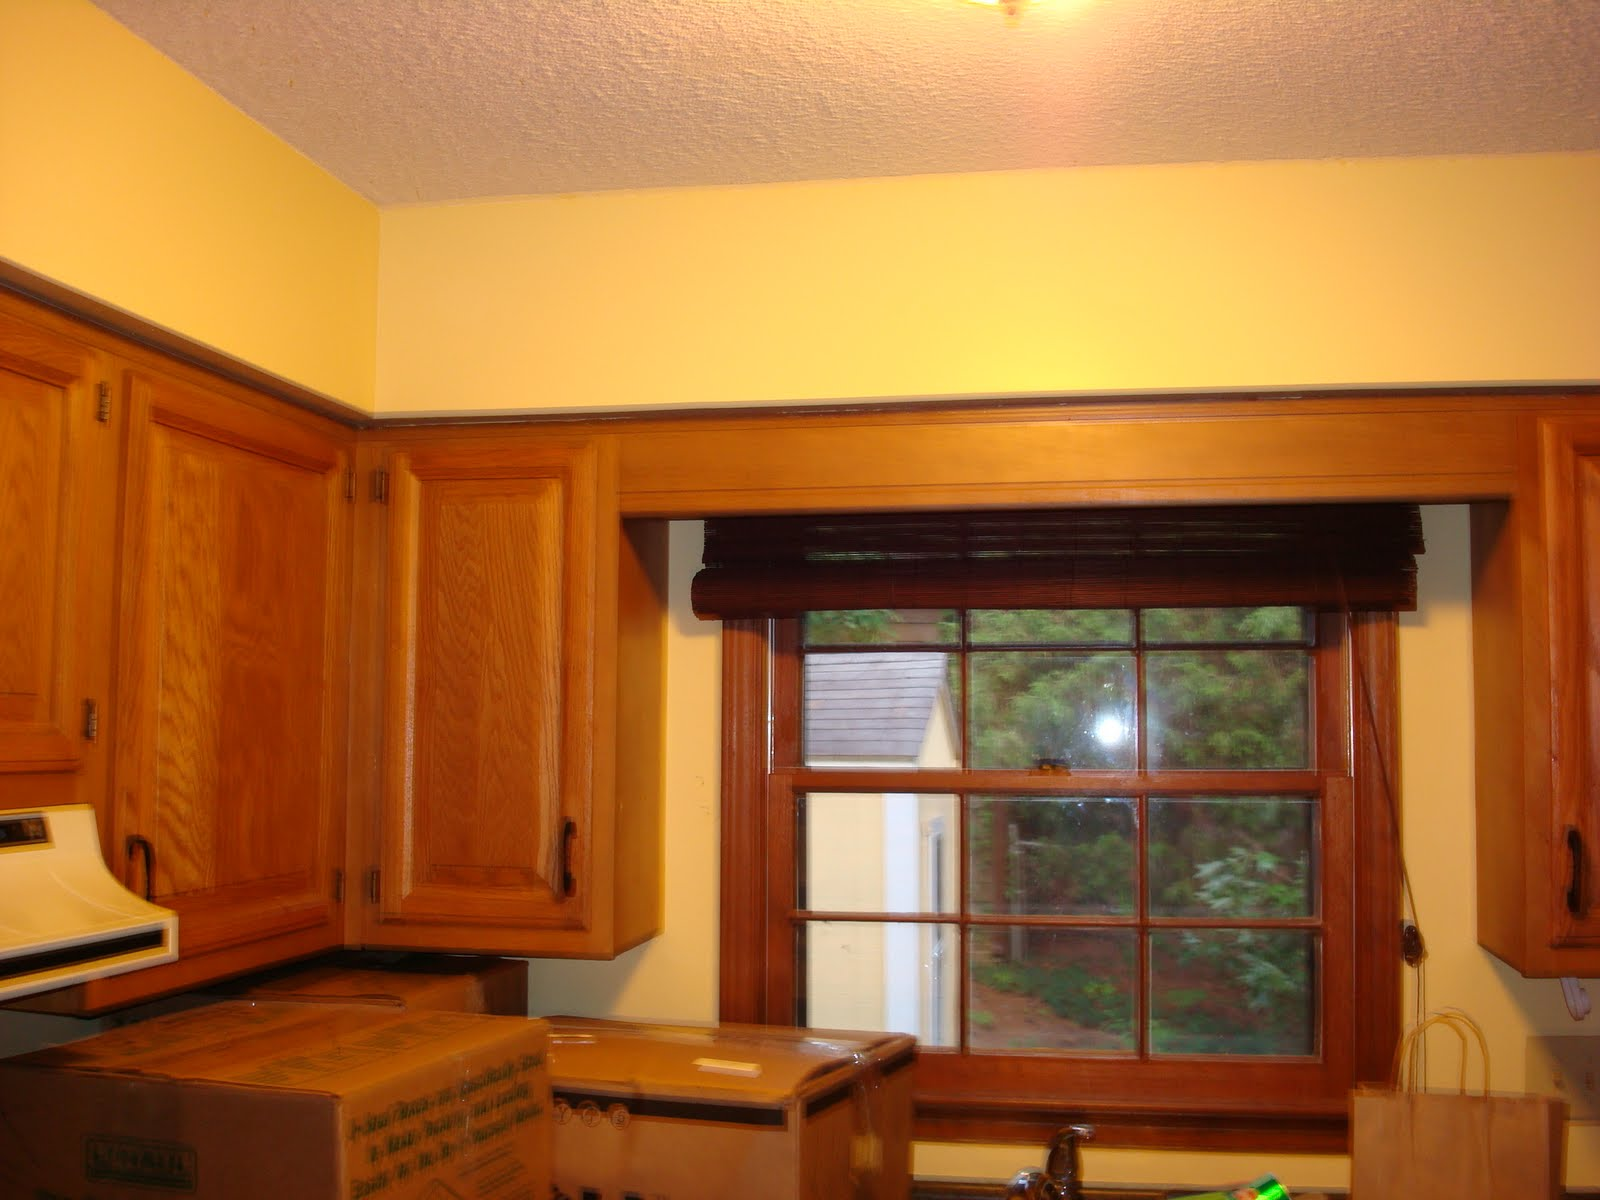 Built In Kitchen Seating Plaques Remodelaholic Renovation With Banquette